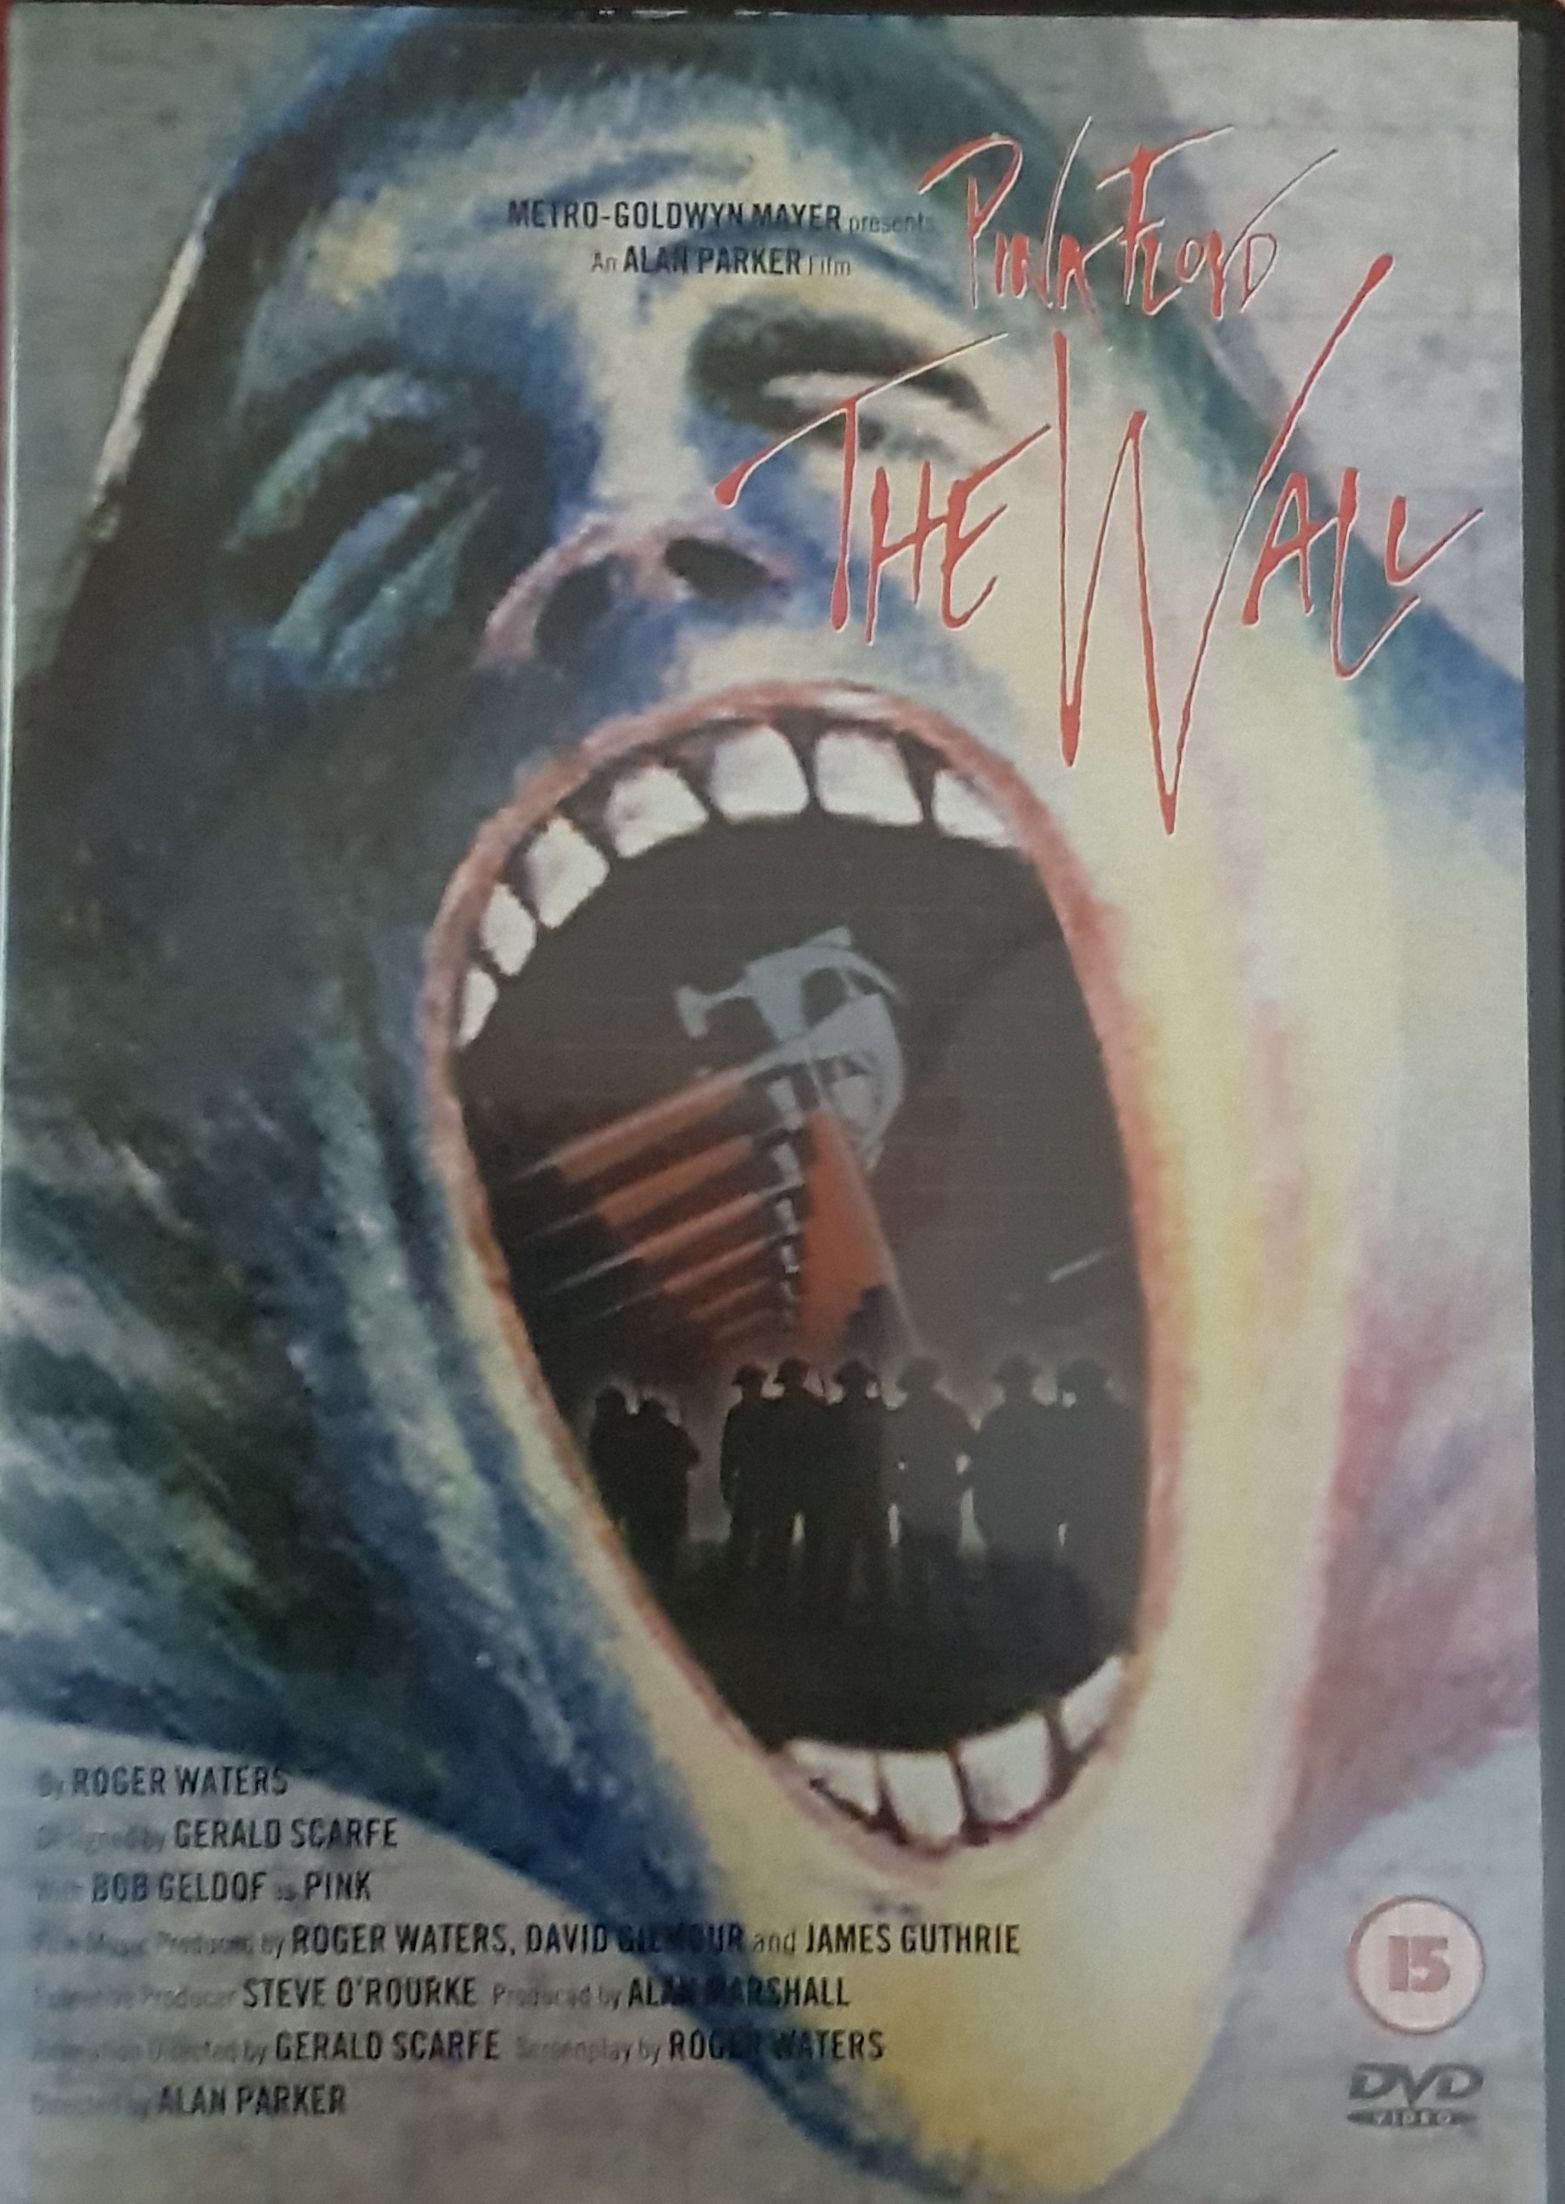 The Wall - DVD-A cover